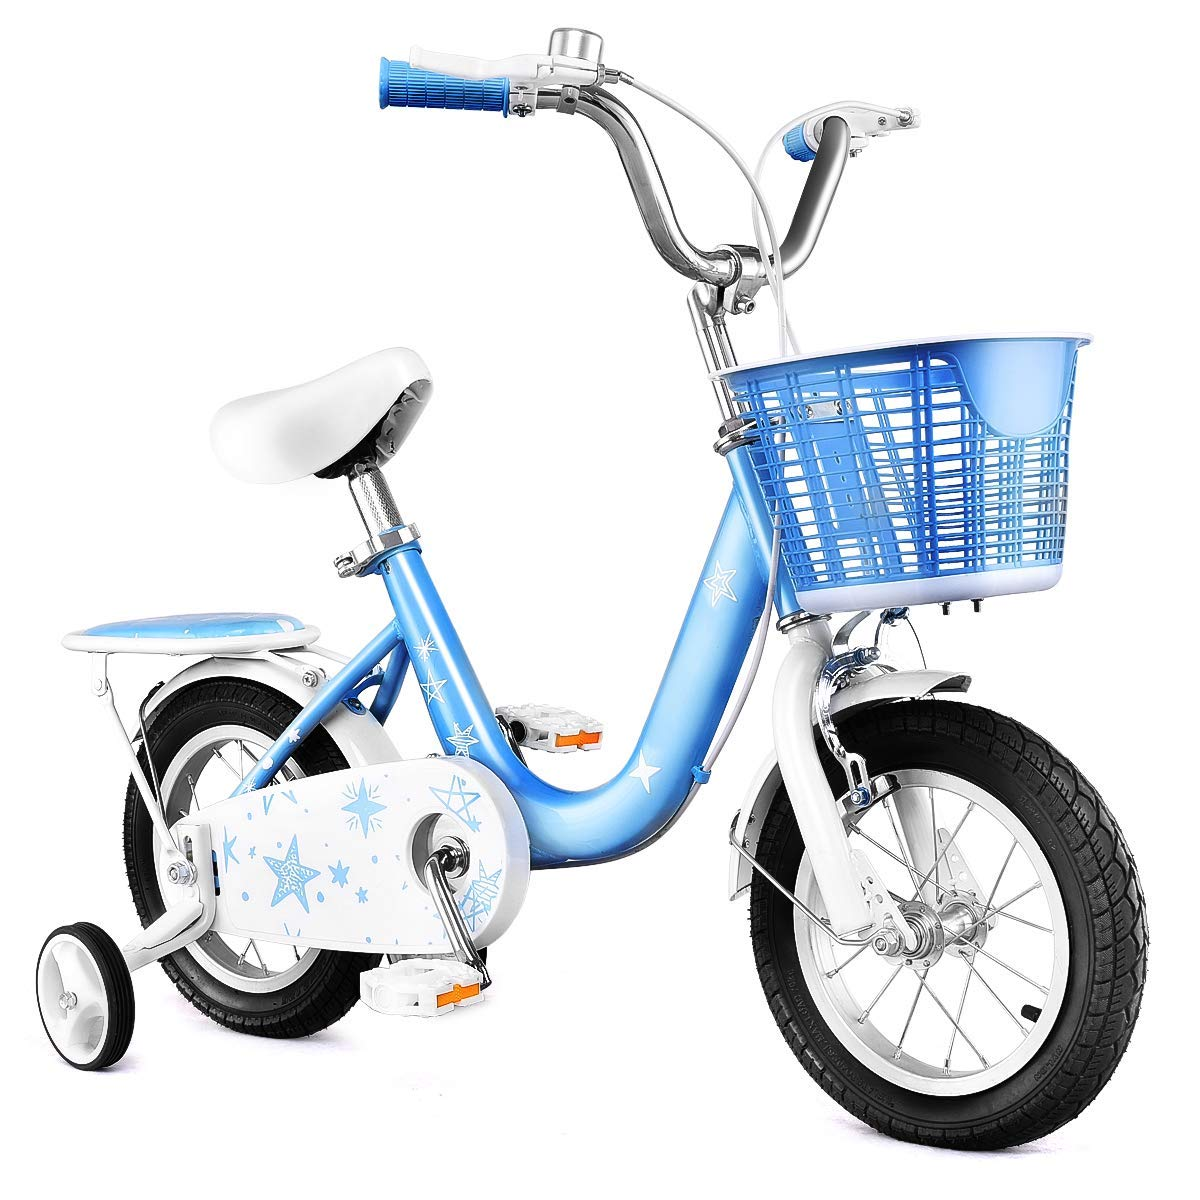 Goplus Kids Bike w/Training Wheels and Basket, 12'' 16'' Boy's and Girl's Bicycle, Gift for Children Kids Balance Bike (Blue, 16'')